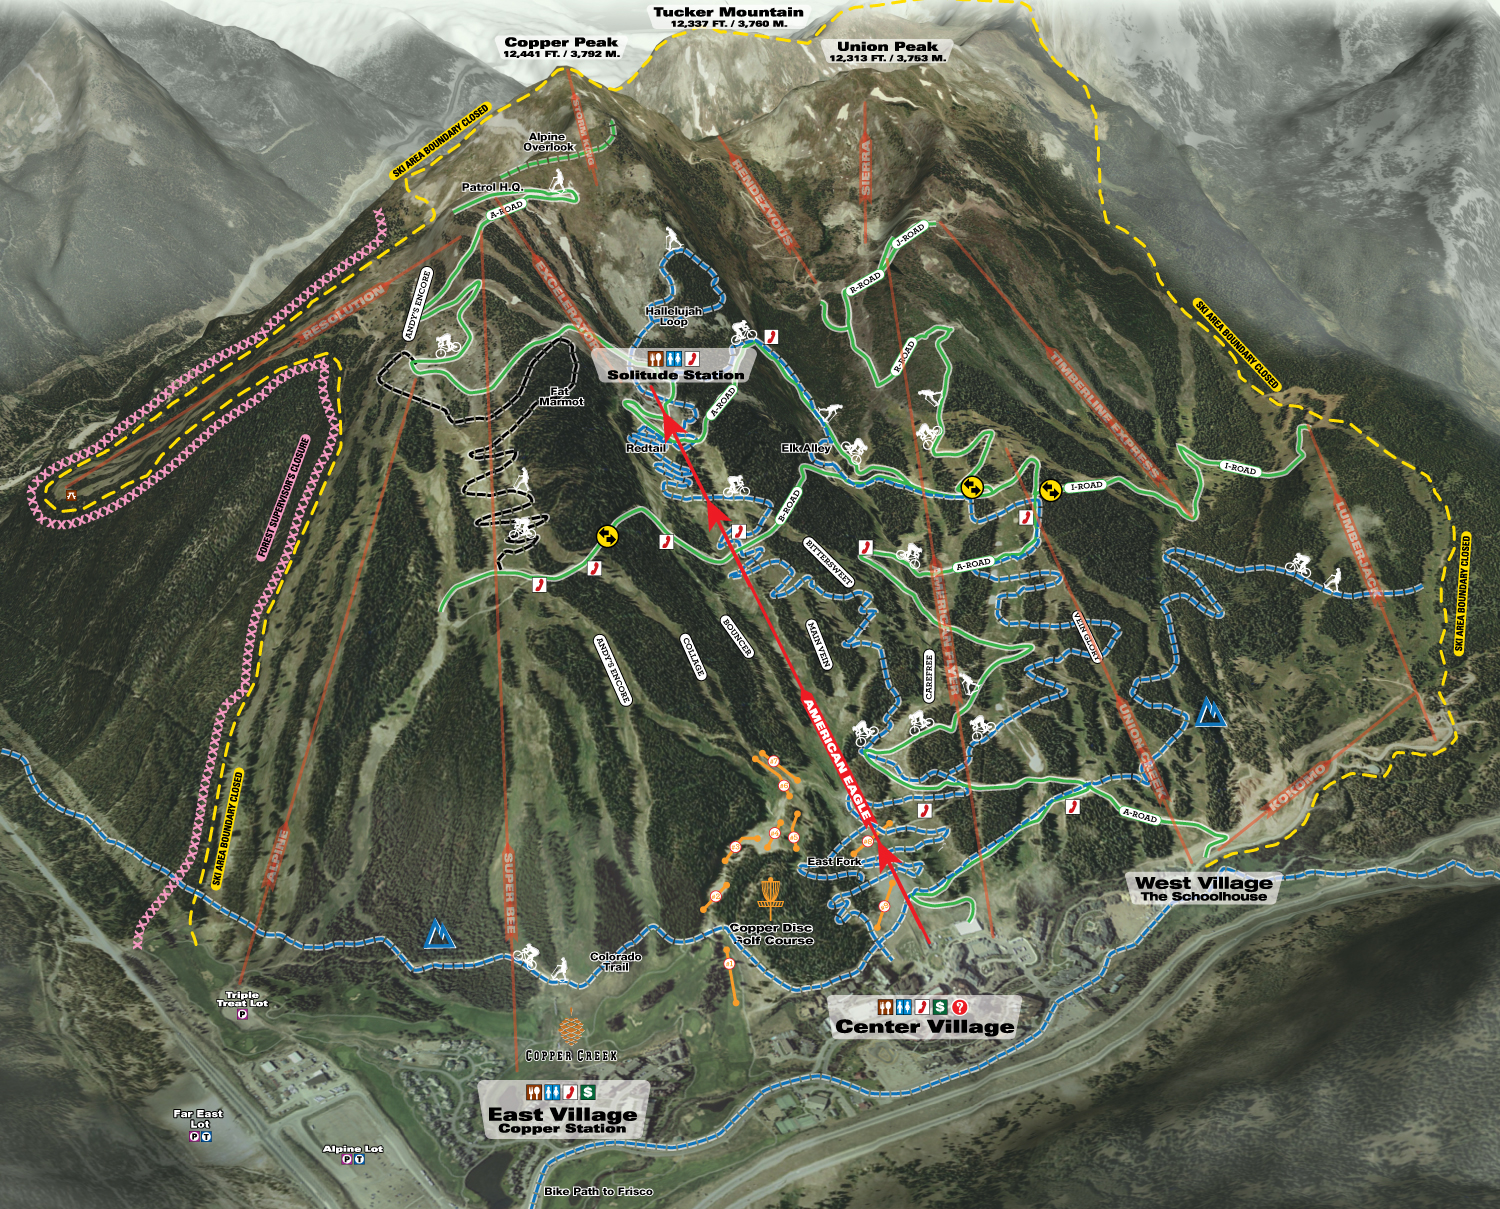 Copper Mountain Summer Mountain Bike Trail Map